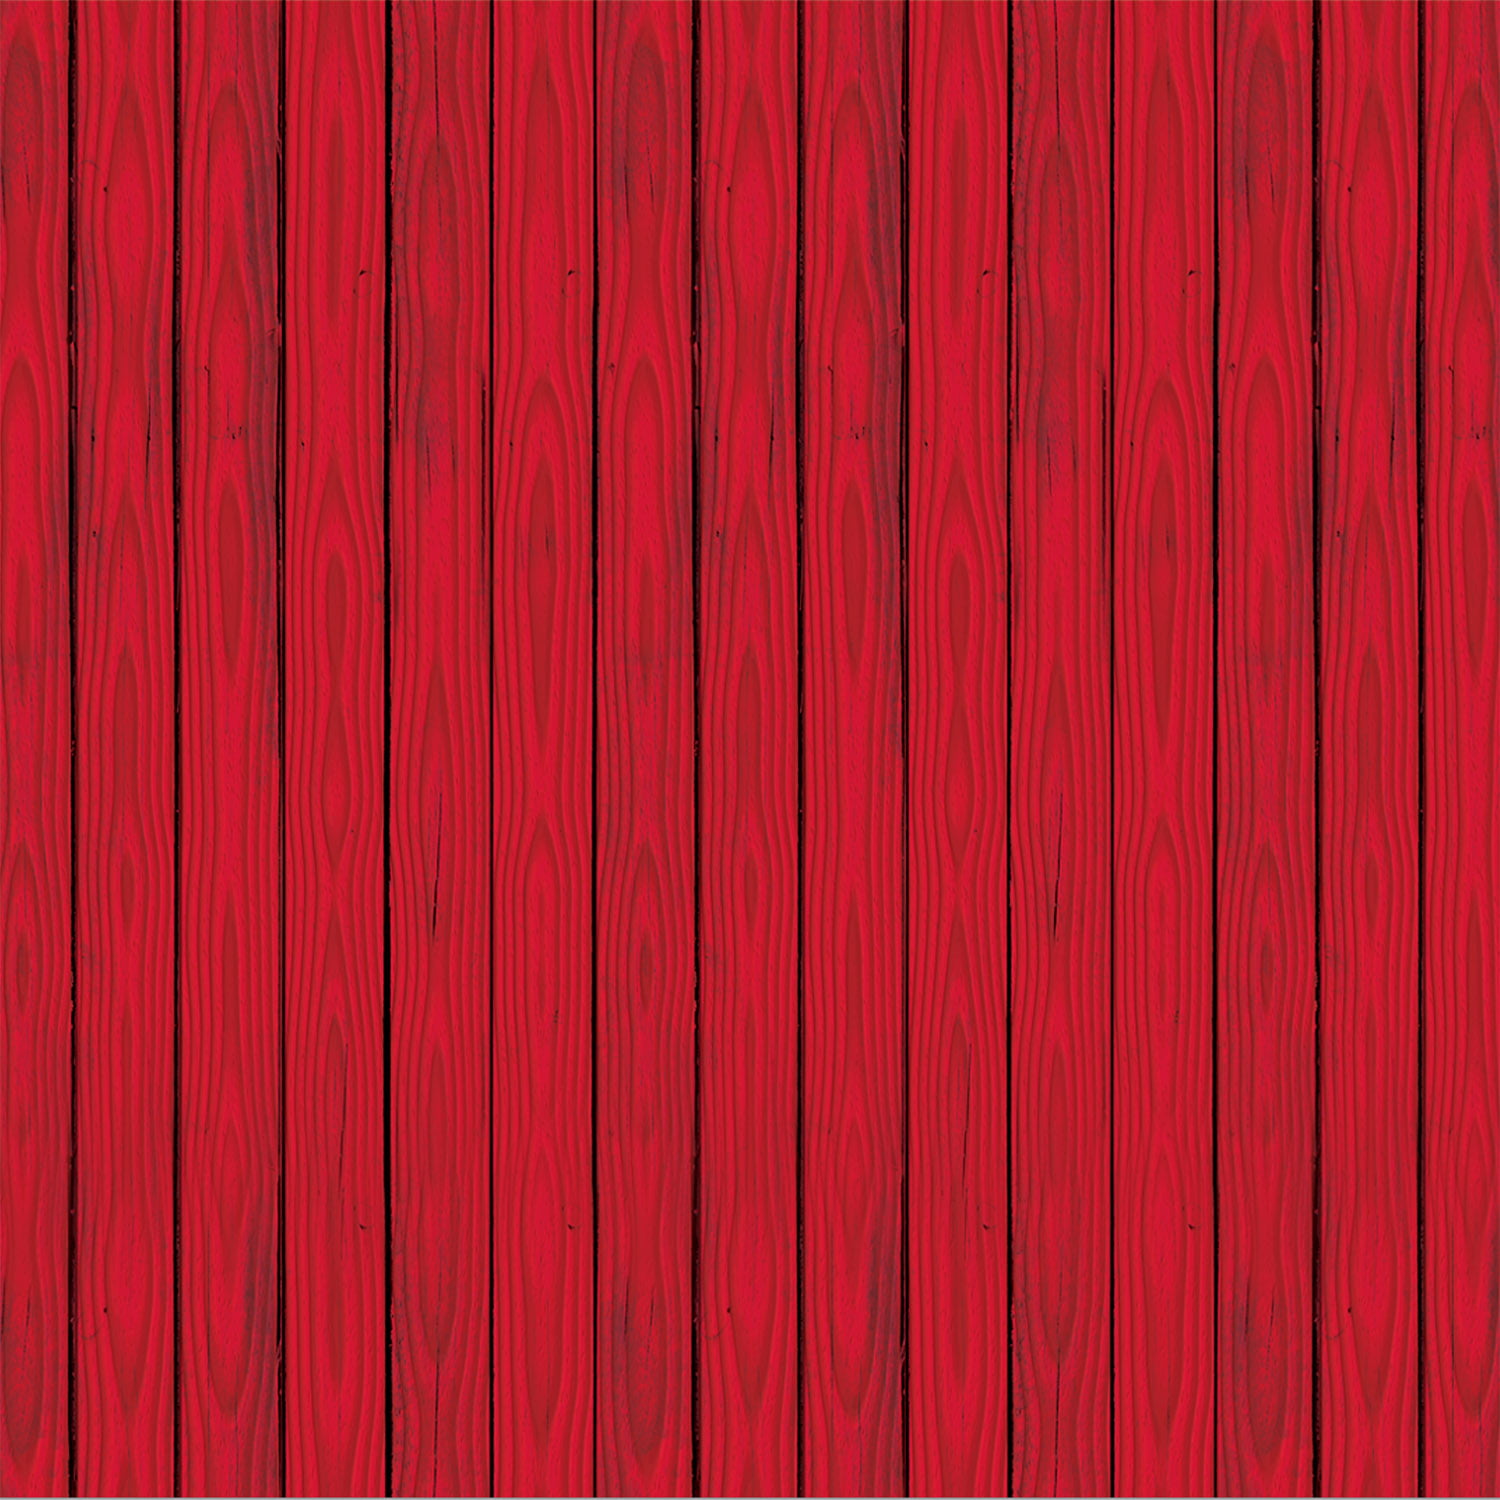 Red Barn Siding Backdrop Pack Of 6